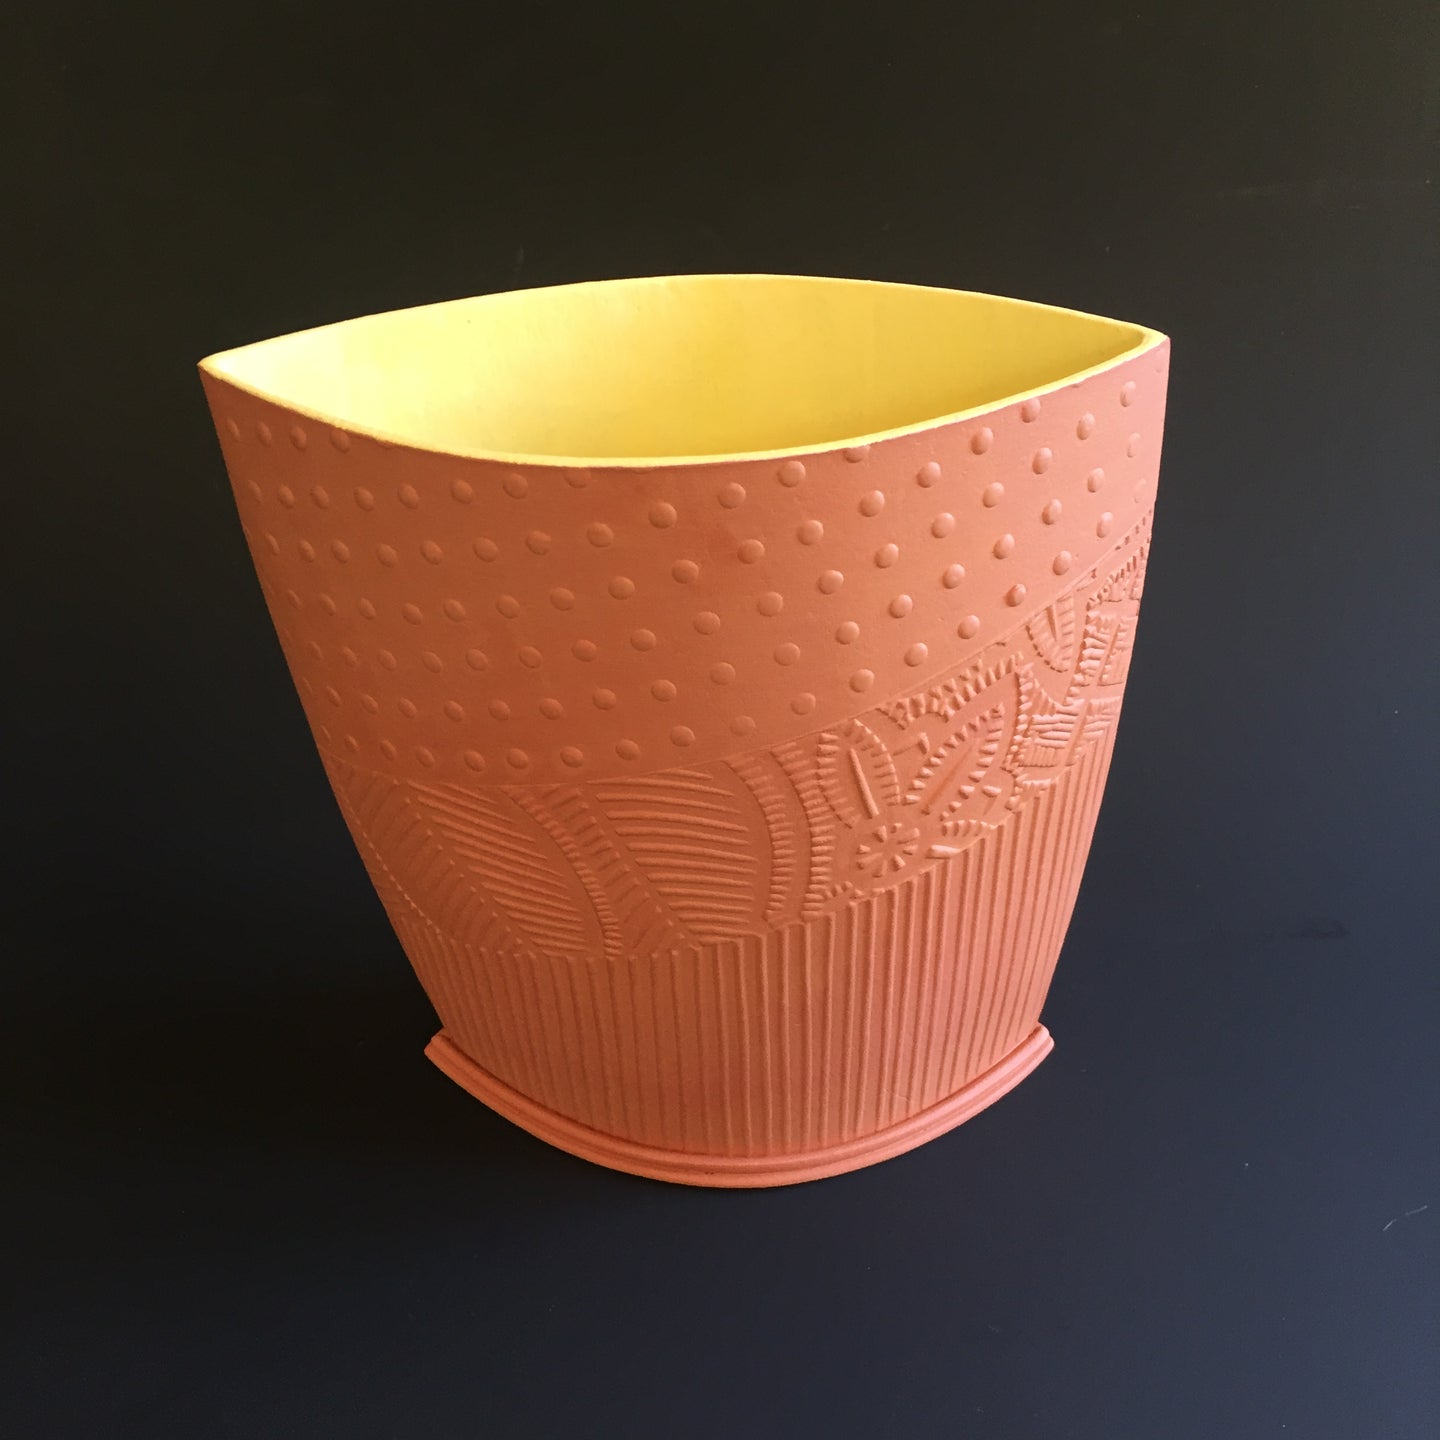 Terracotta vessel with yellow interior